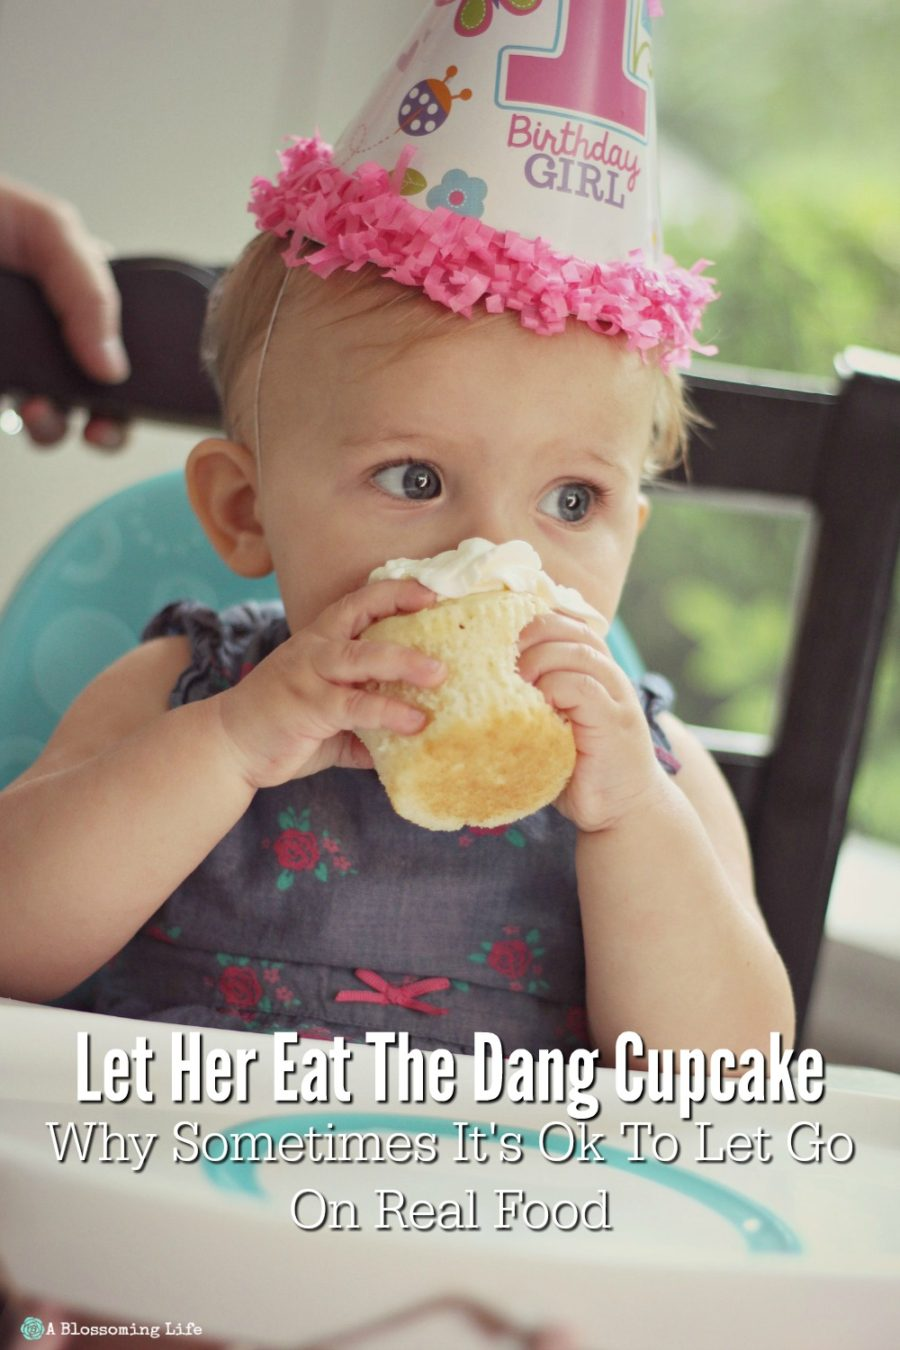 Let Her Eat The Dang Cupcake- Why Sometimes It's Ok To Let Go On Real Food